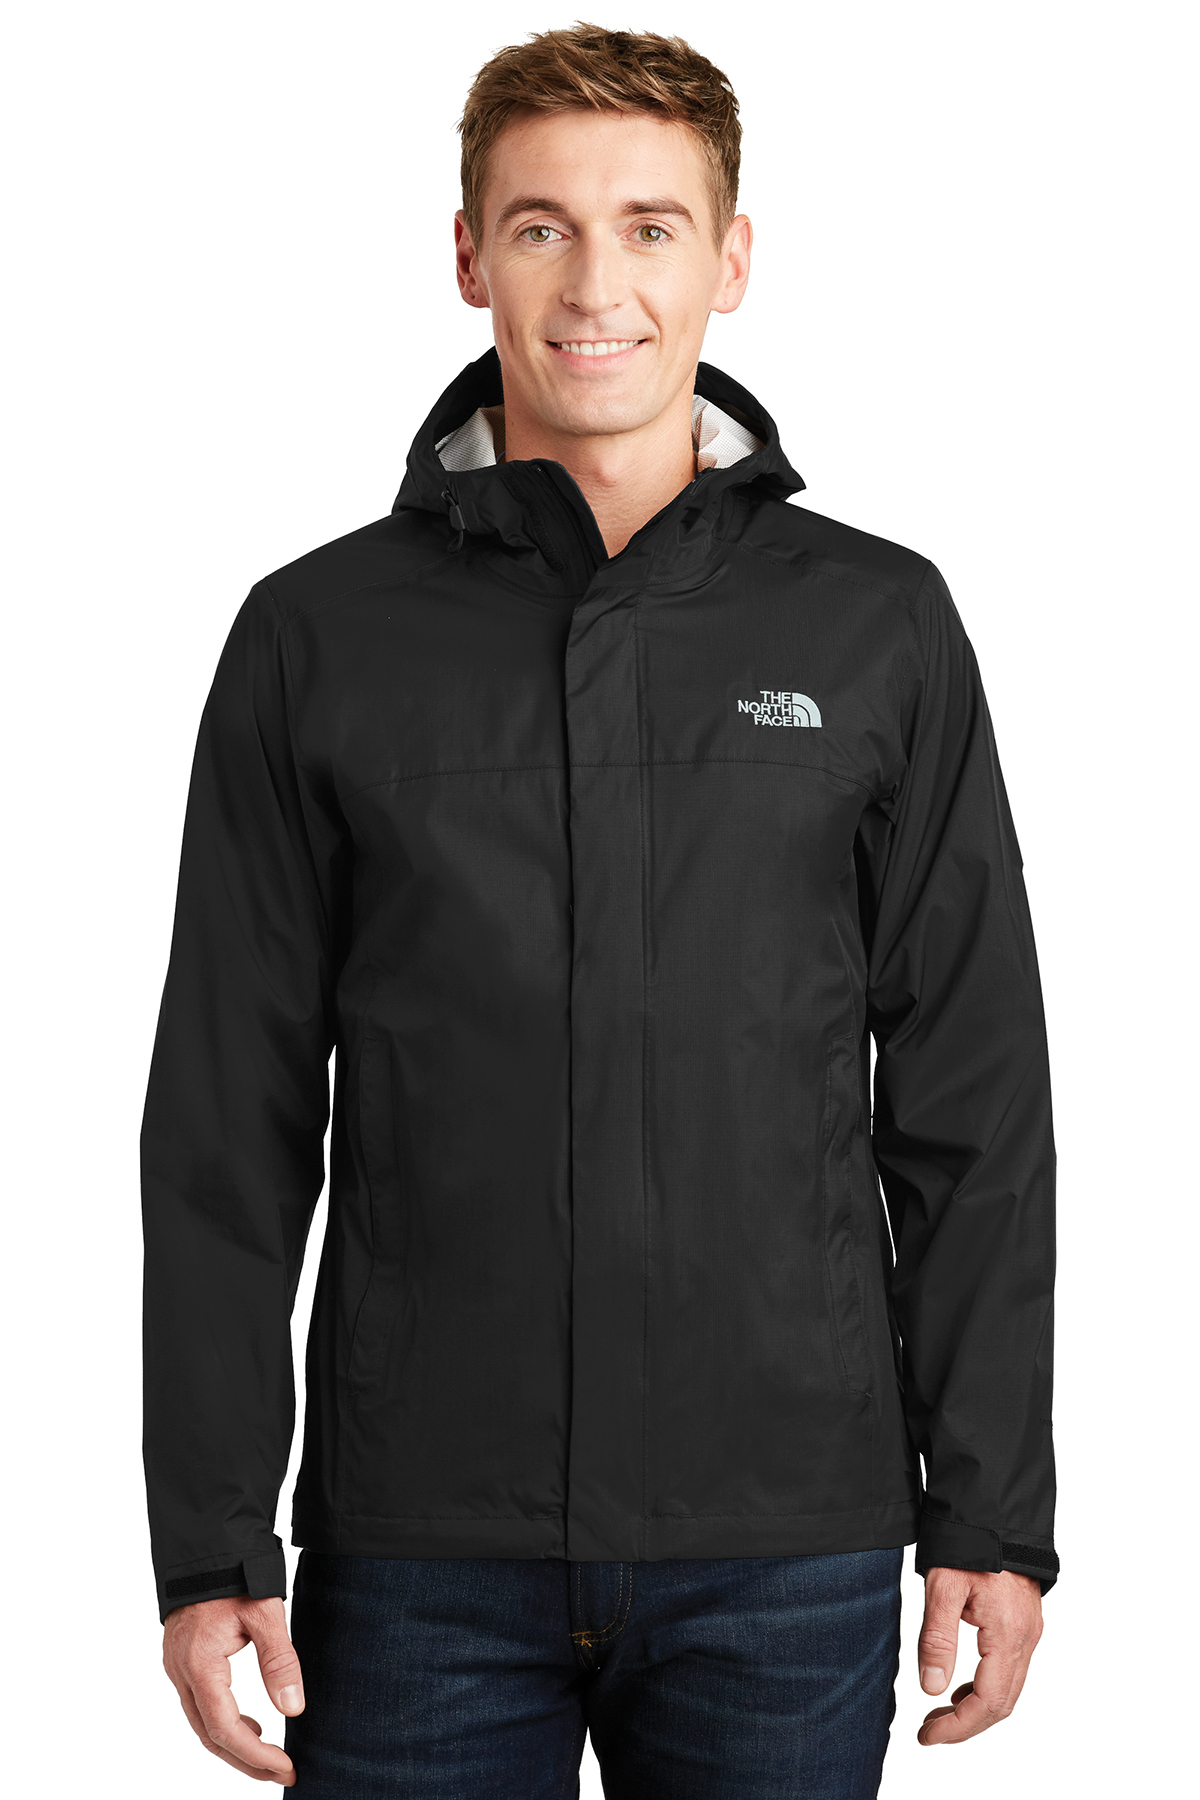 The North Face NF0A3LH4 - Men's DryVent Rain Jacket